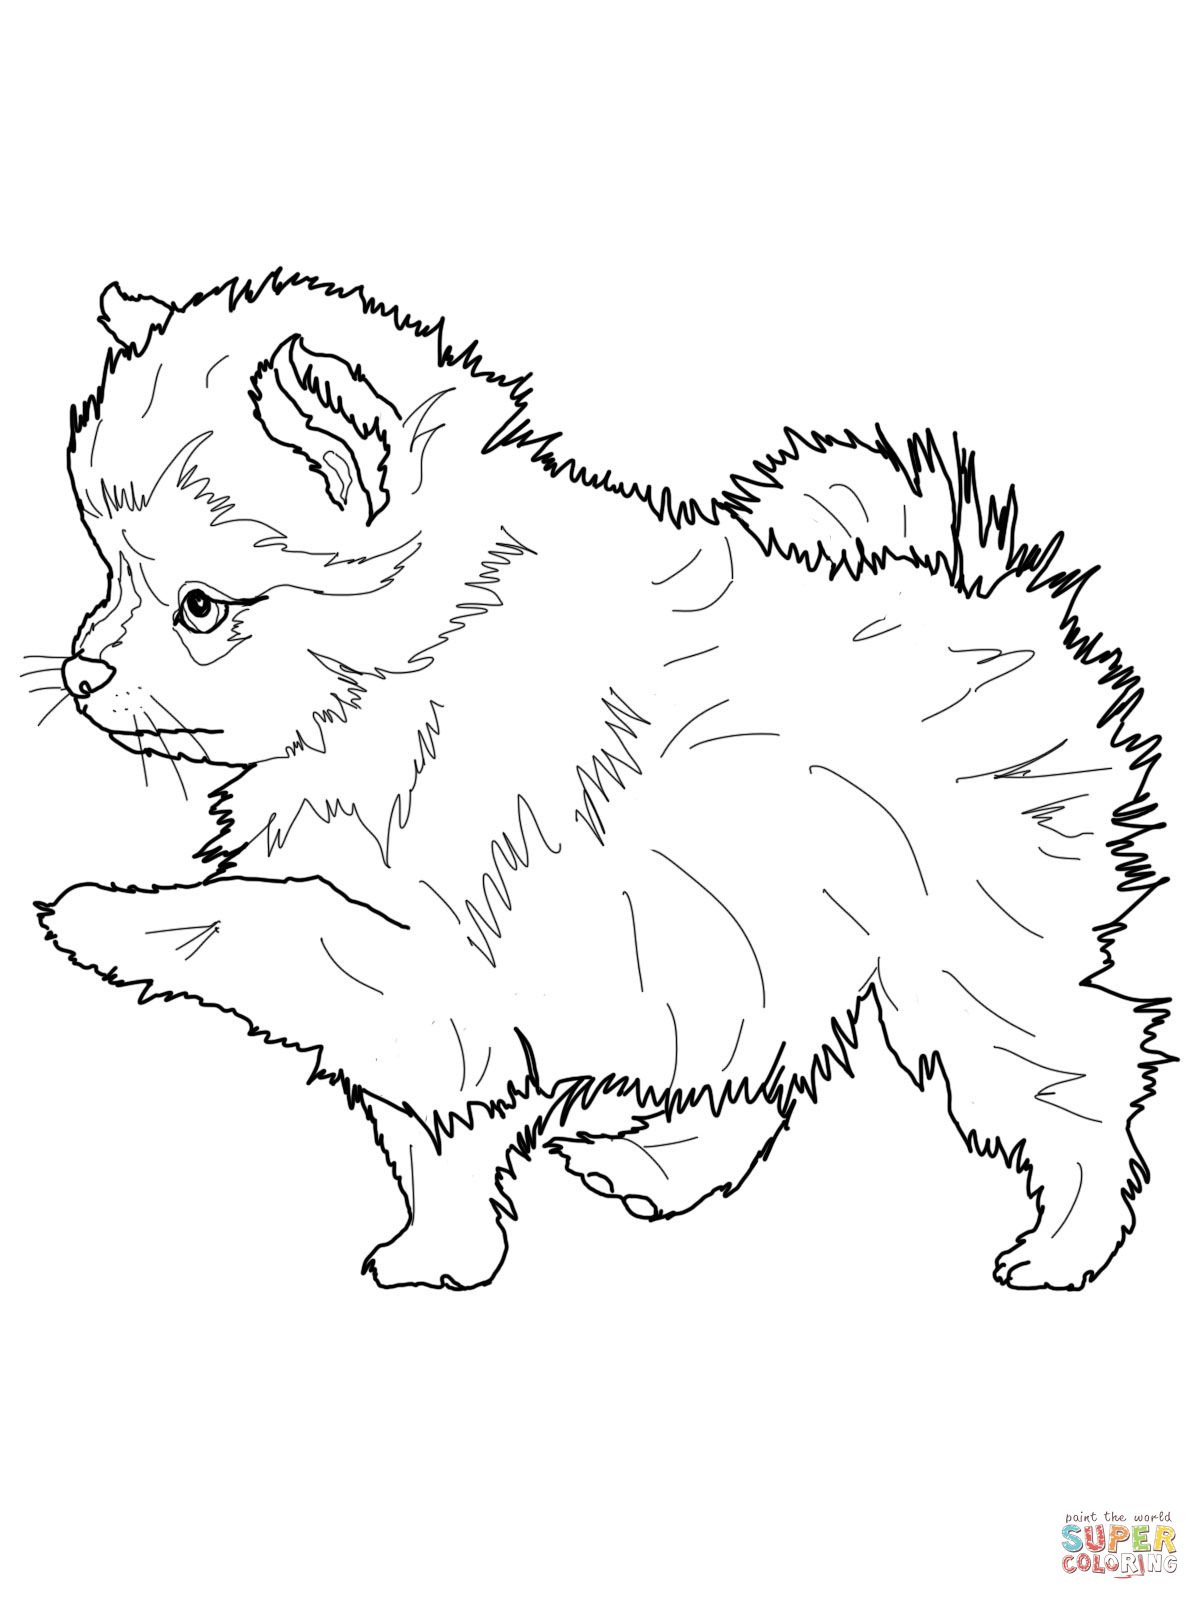 puppy realistic dog coloring pages pug coloring pages to download and print for free coloring pages puppy dog realistic